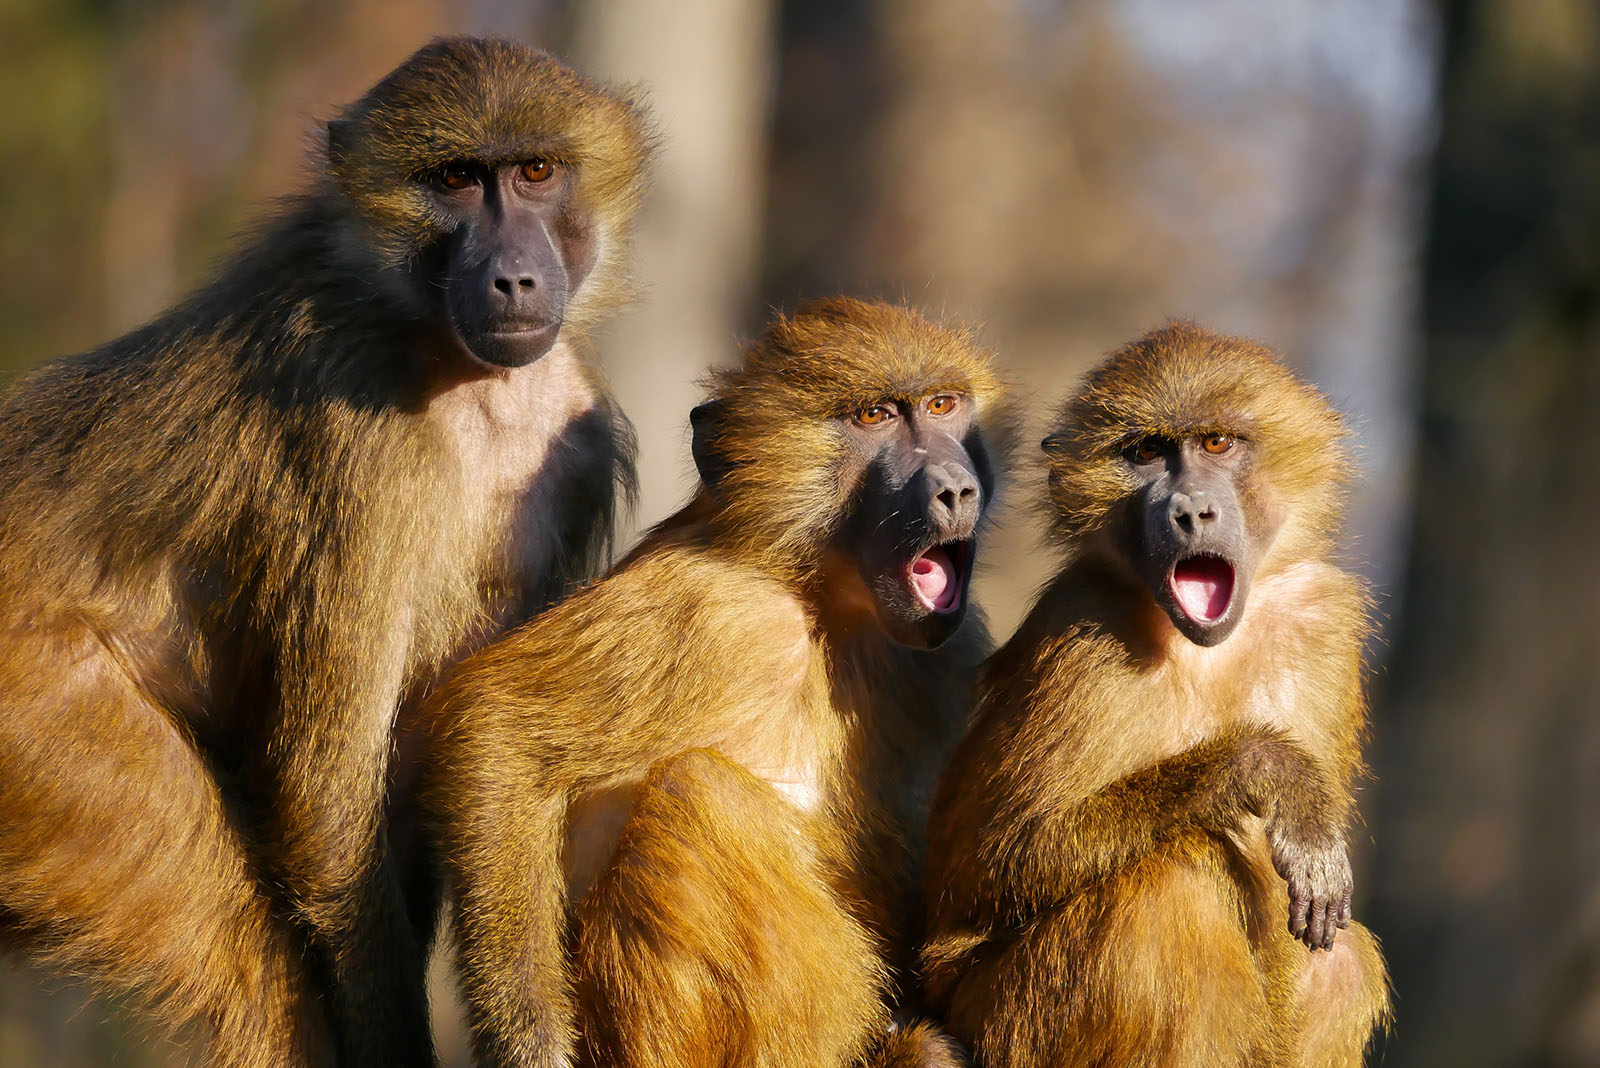 Three monkeys looking shocked and excited.